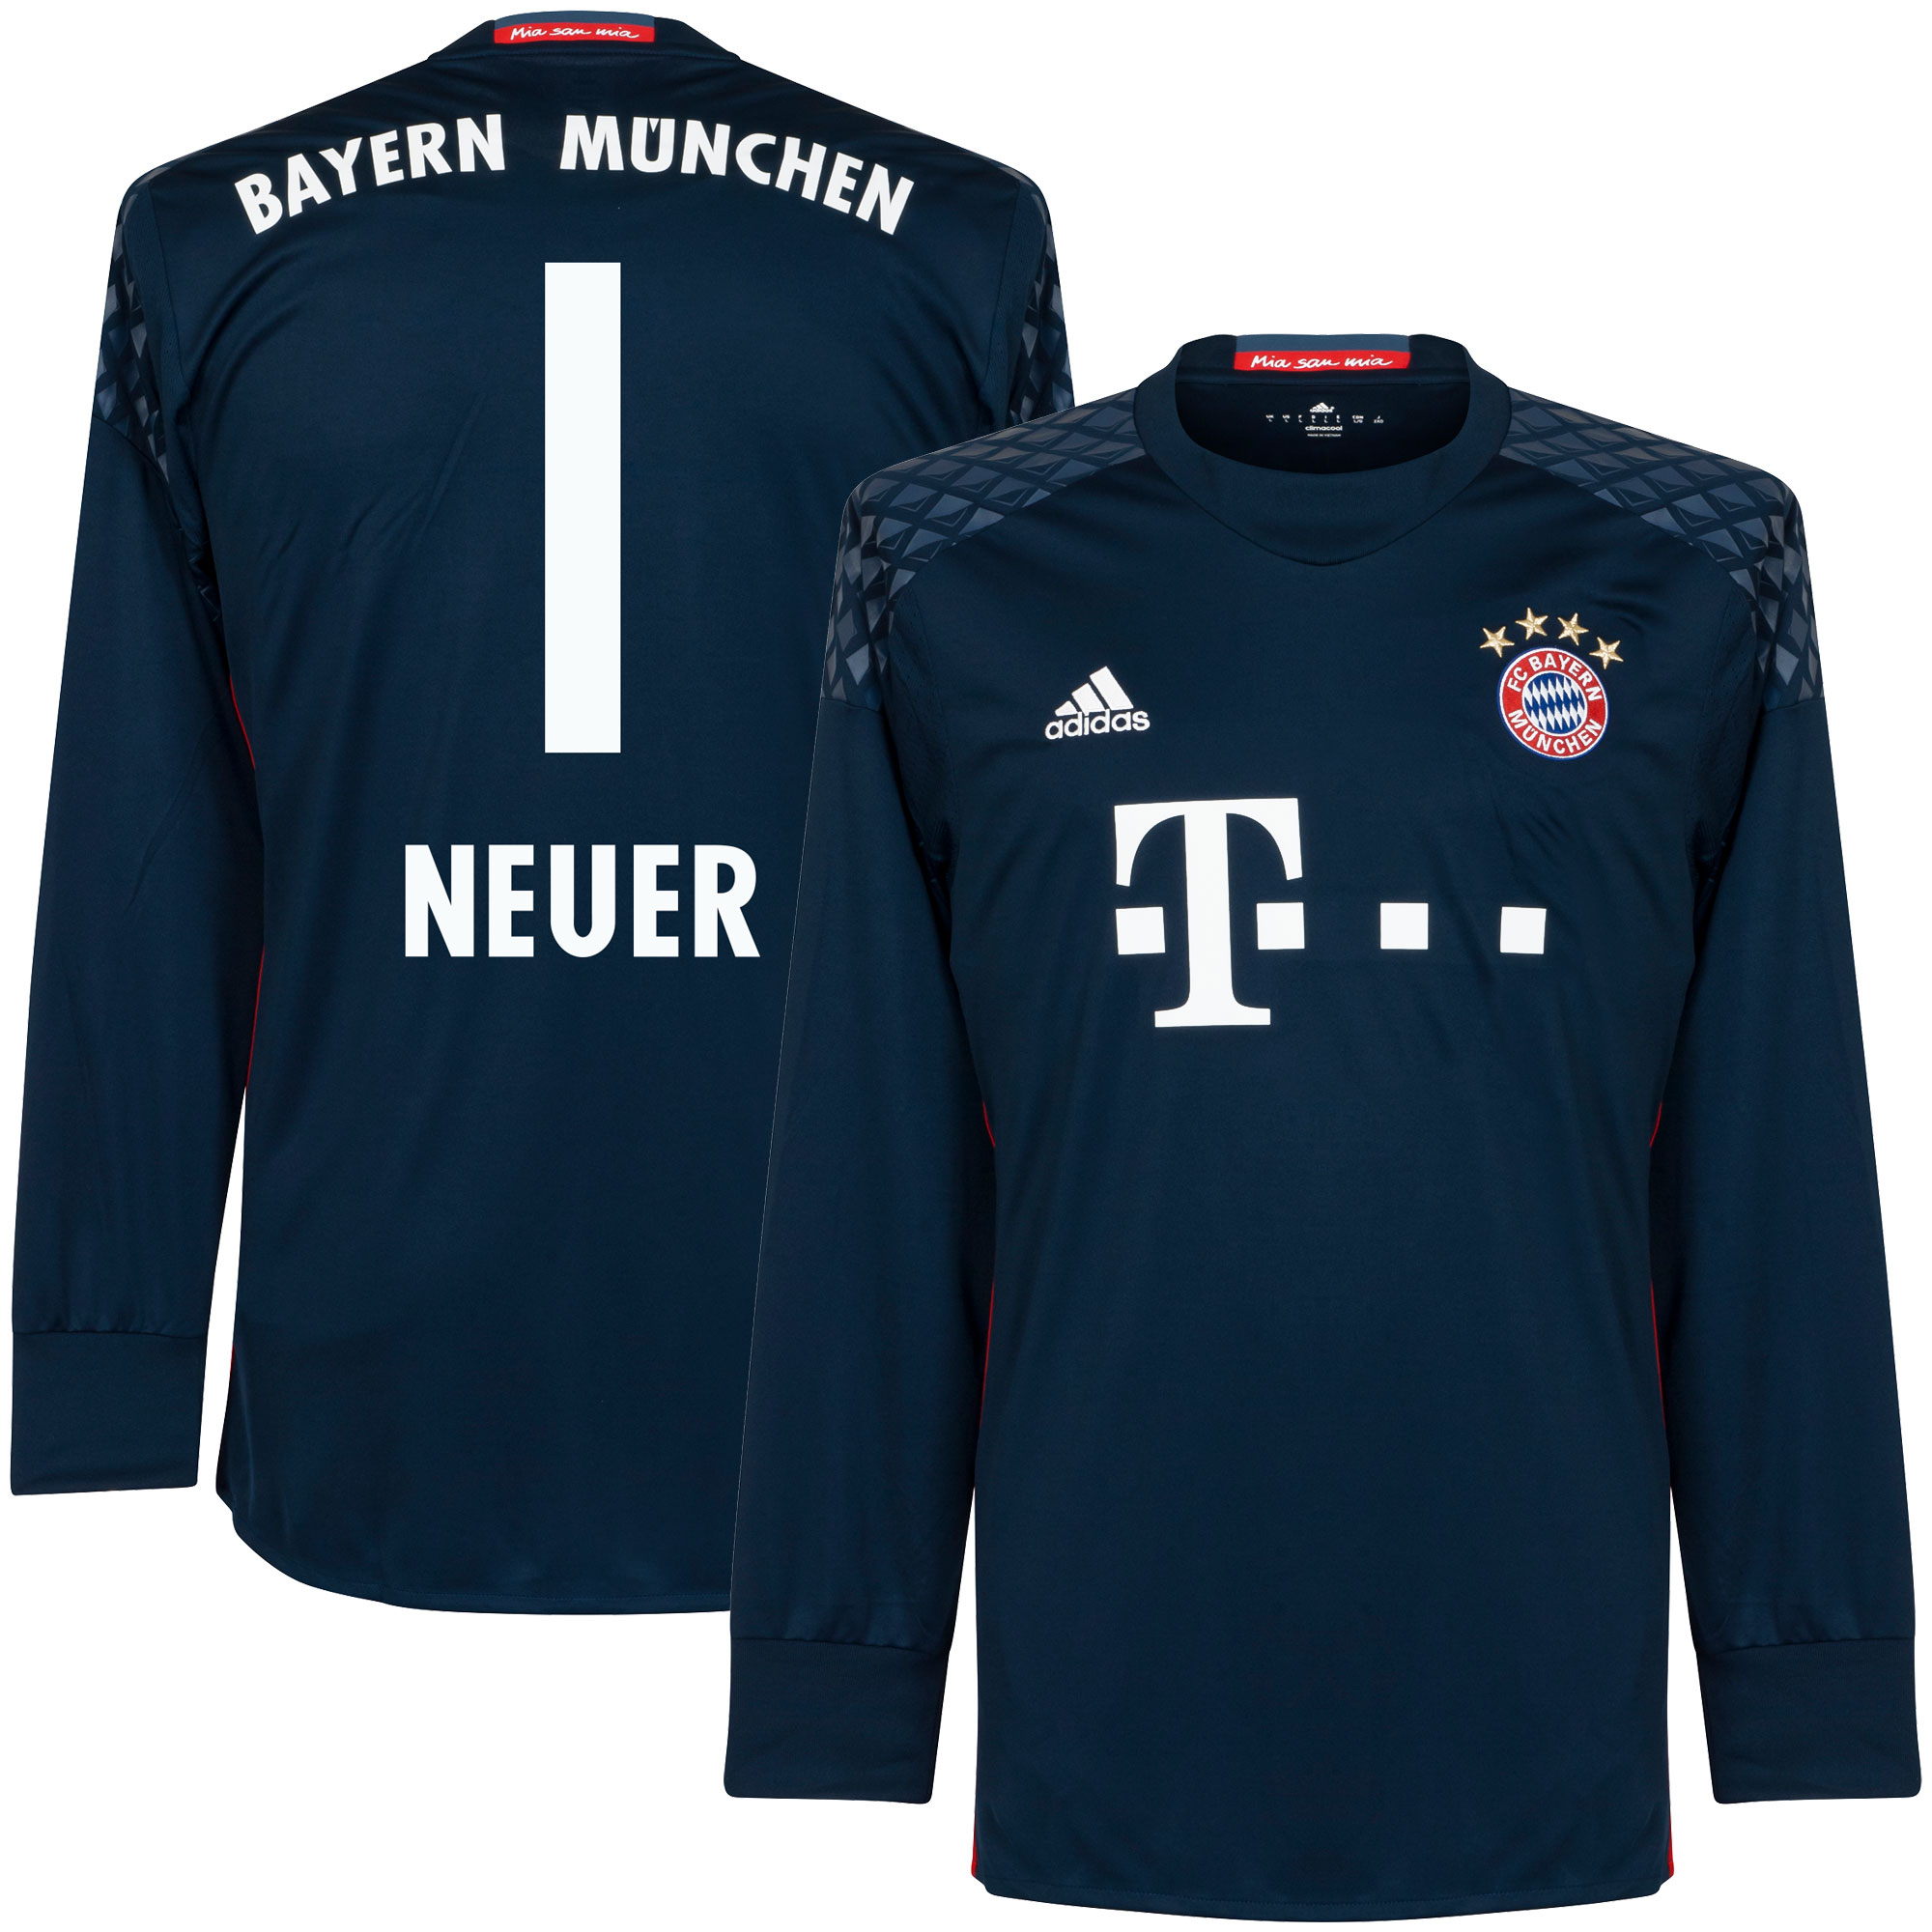 Bayern Munich Home KIDS Neuer Goalkeeper Jersey 2016 / 2017 (Fan Style Printing) - 128